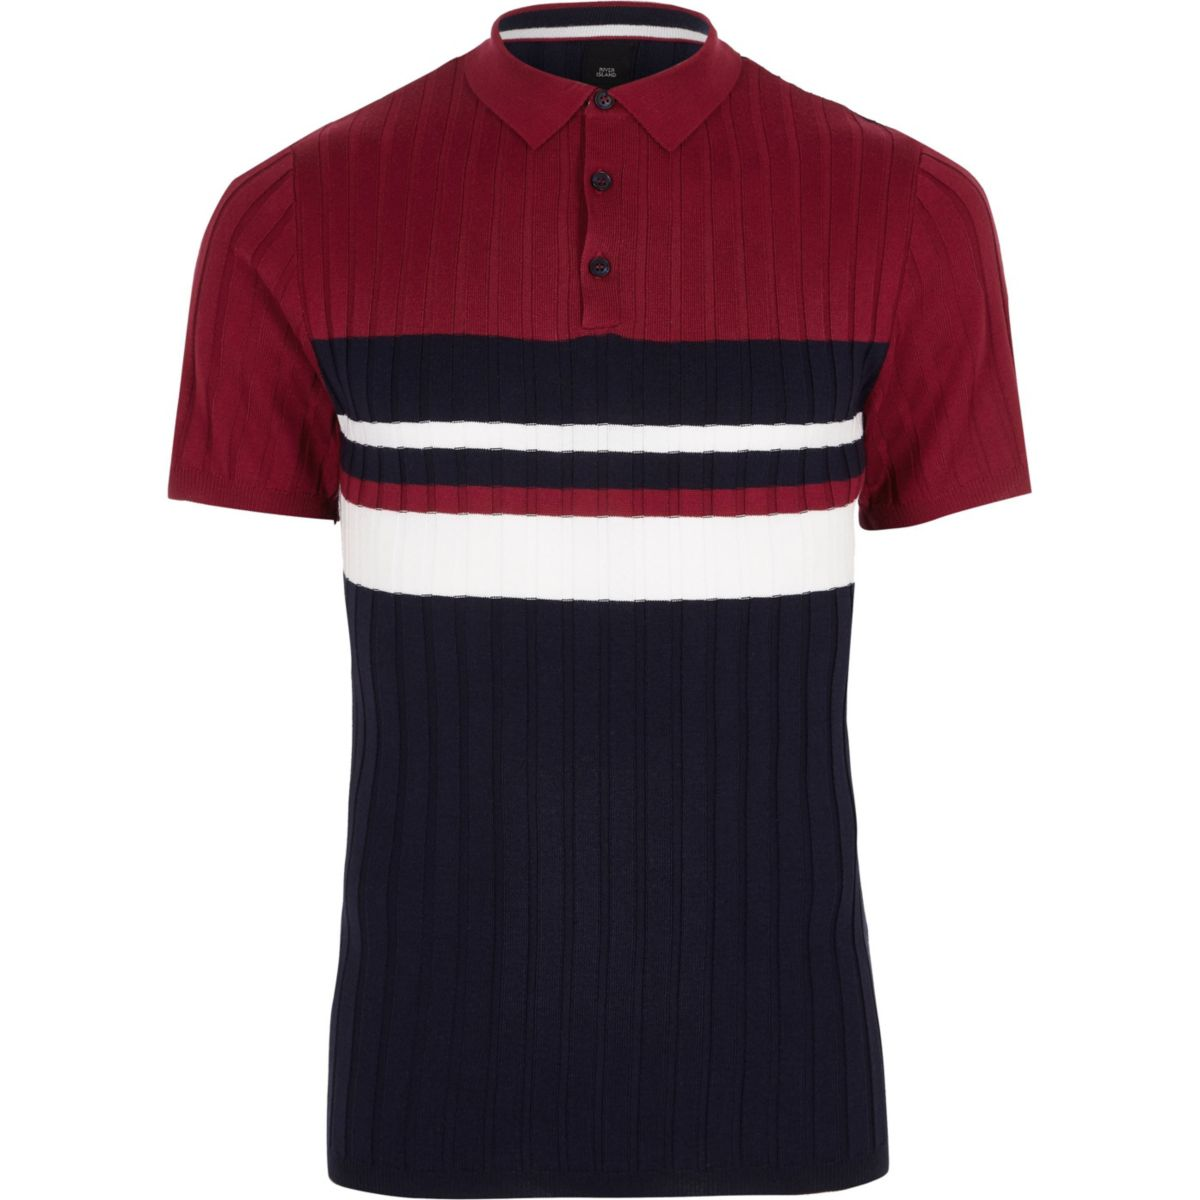 Navy block stripe muscle fit polo shirt